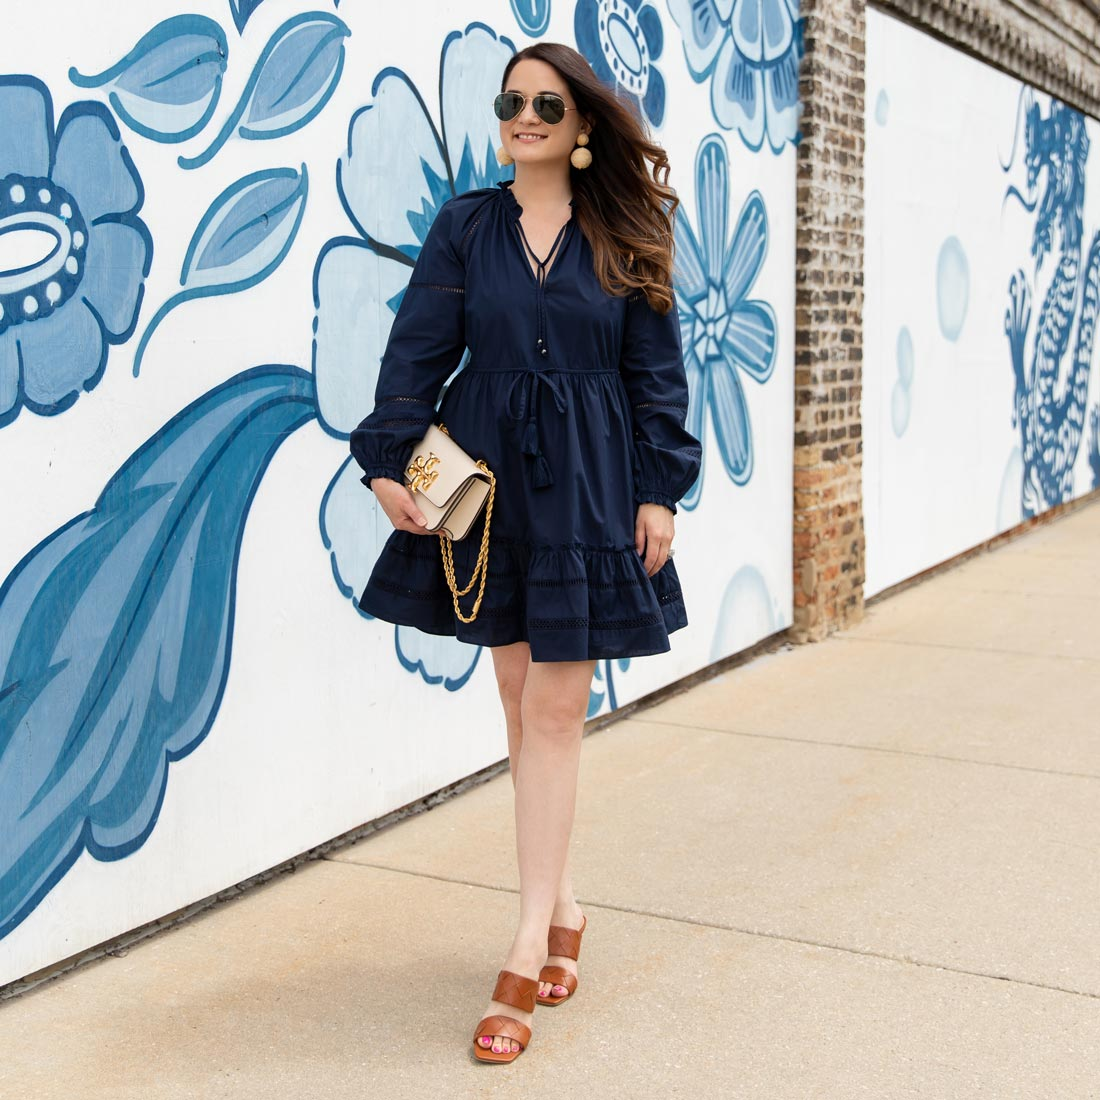 Blue Floral Wall Chicago